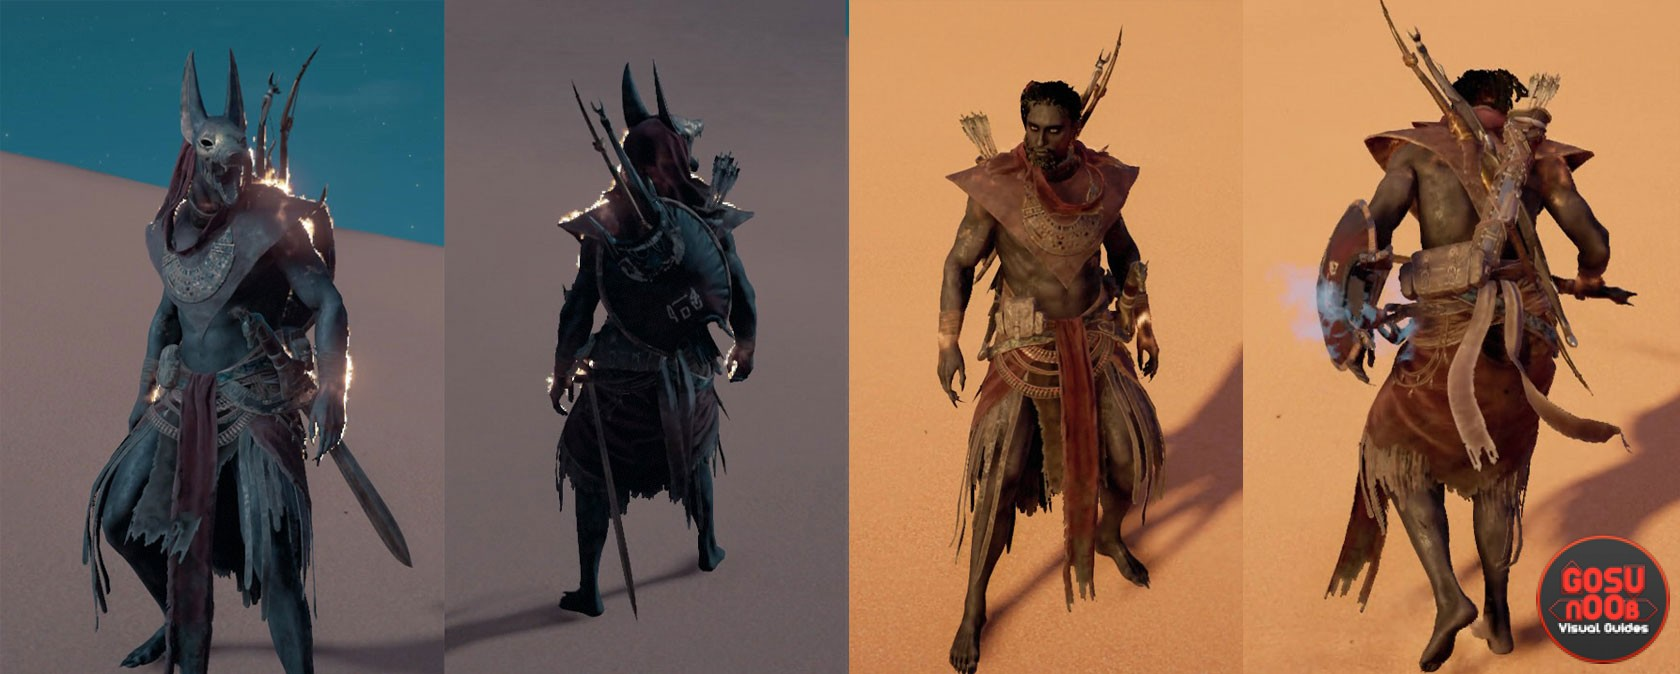 Ac Origins Anubis Outfit Is Finally Here Trials Of The Gods